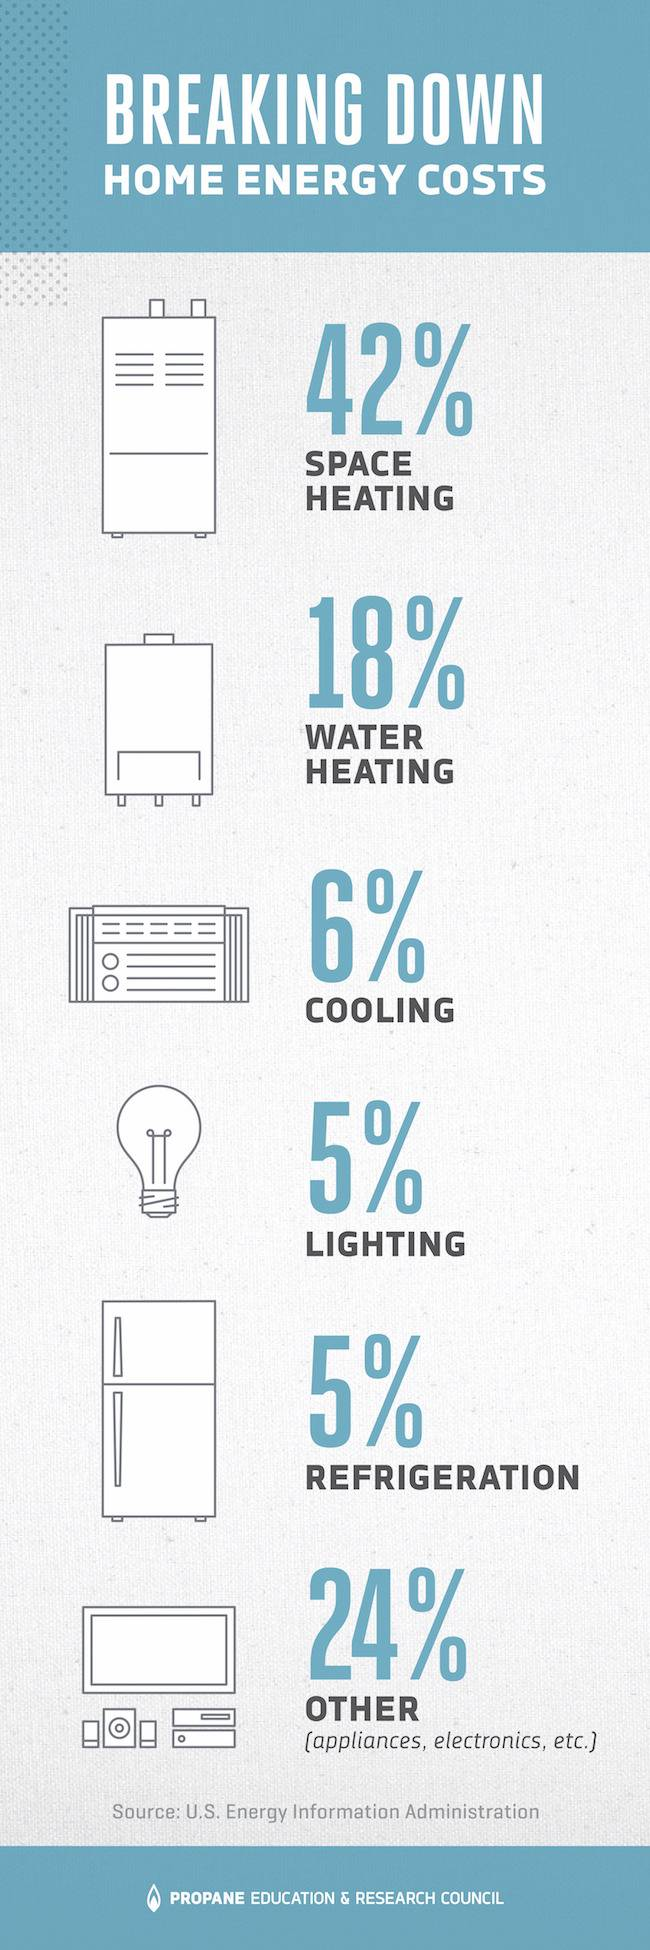 breaking down home energy costs